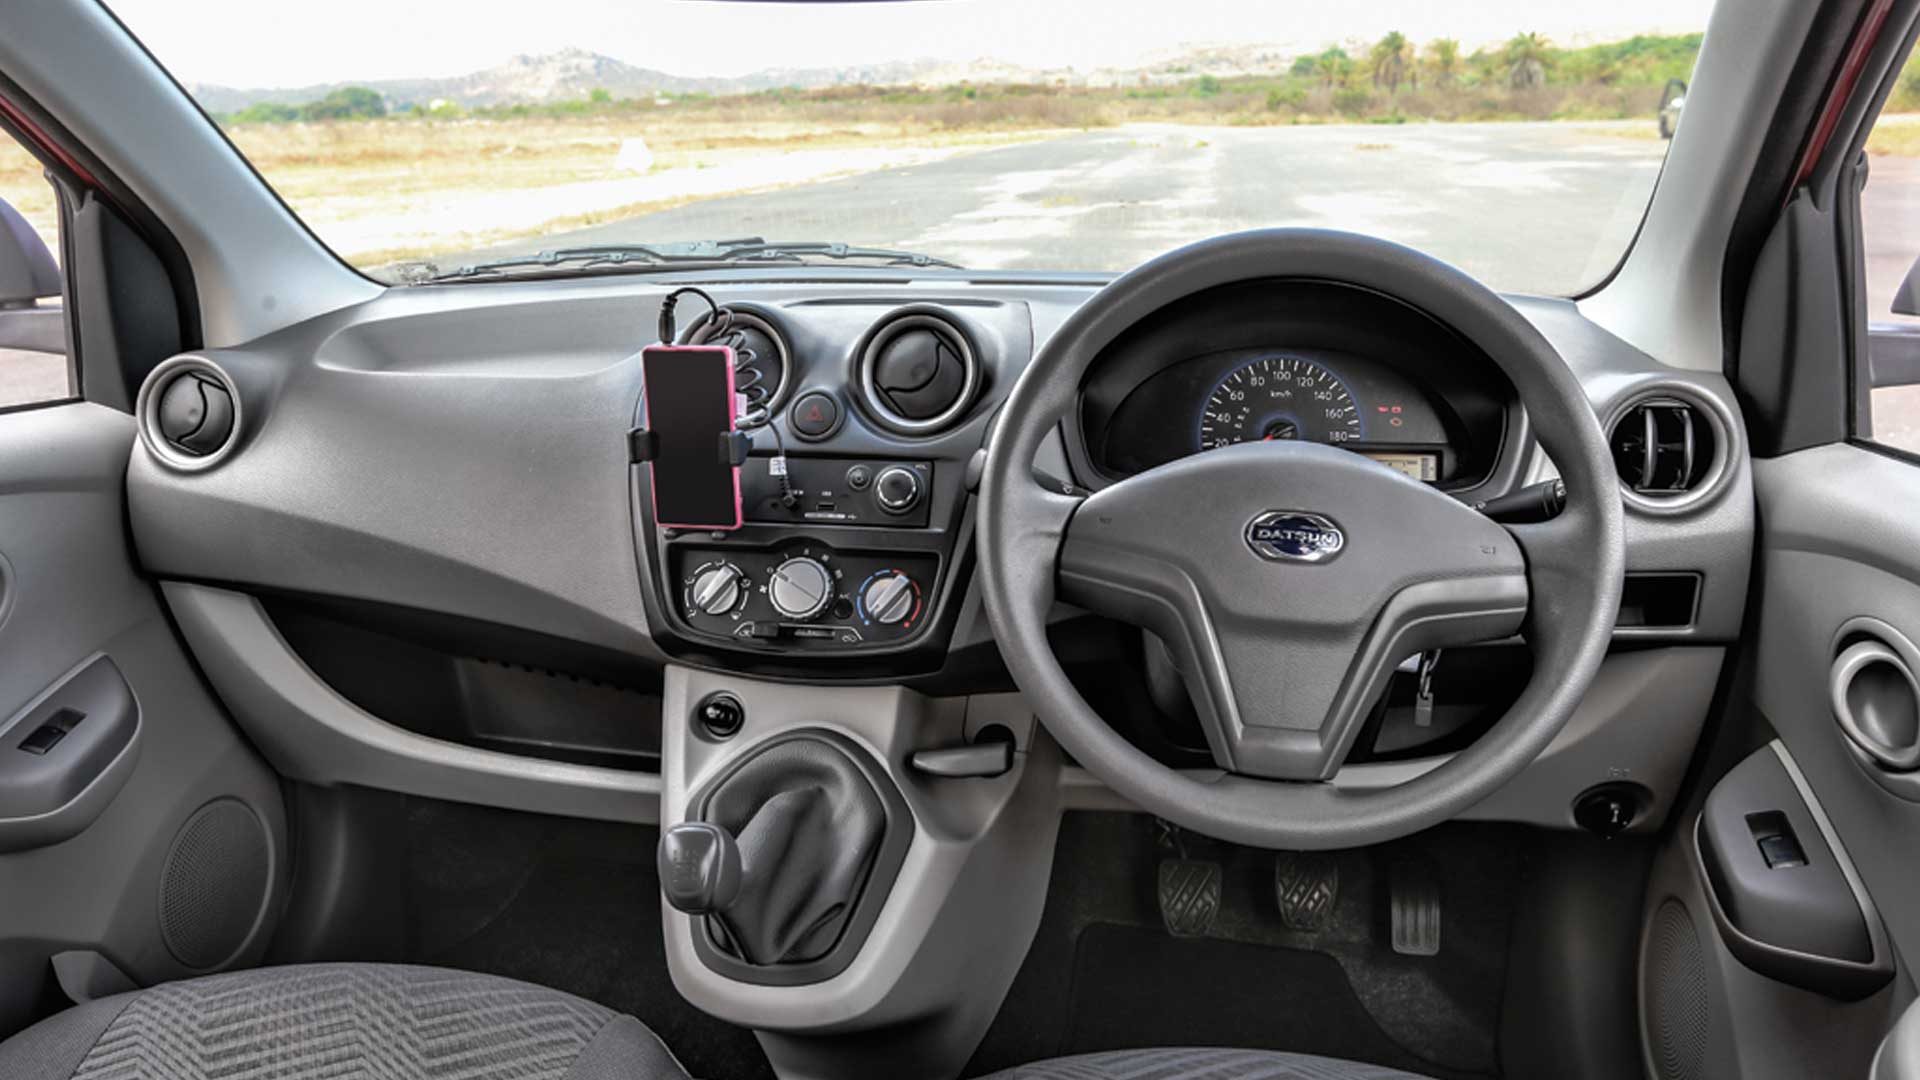 Datsun GO 2015 A EPS - Price, Mileage, Reviews ...